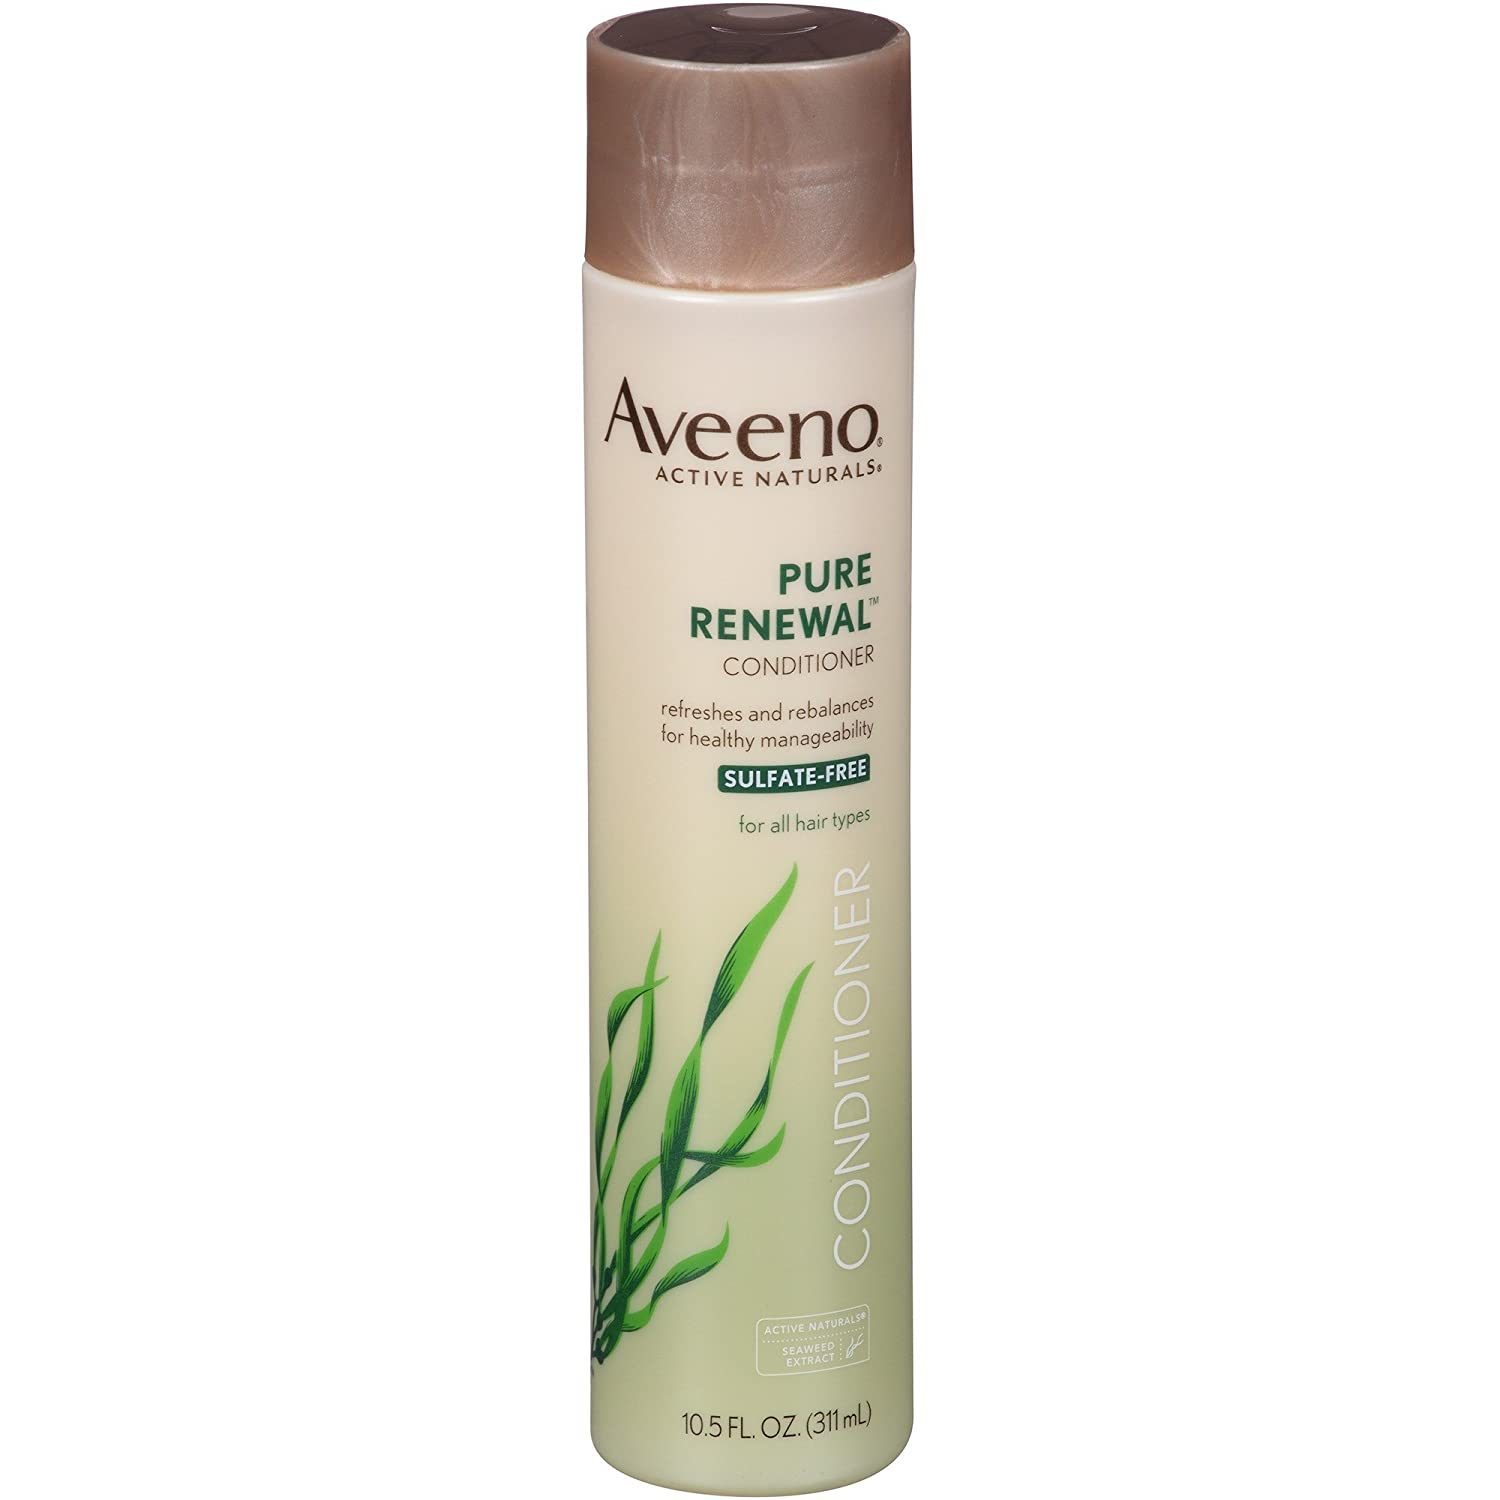 Aveeno Pure Renewal Conditioner, Sulfate-Free